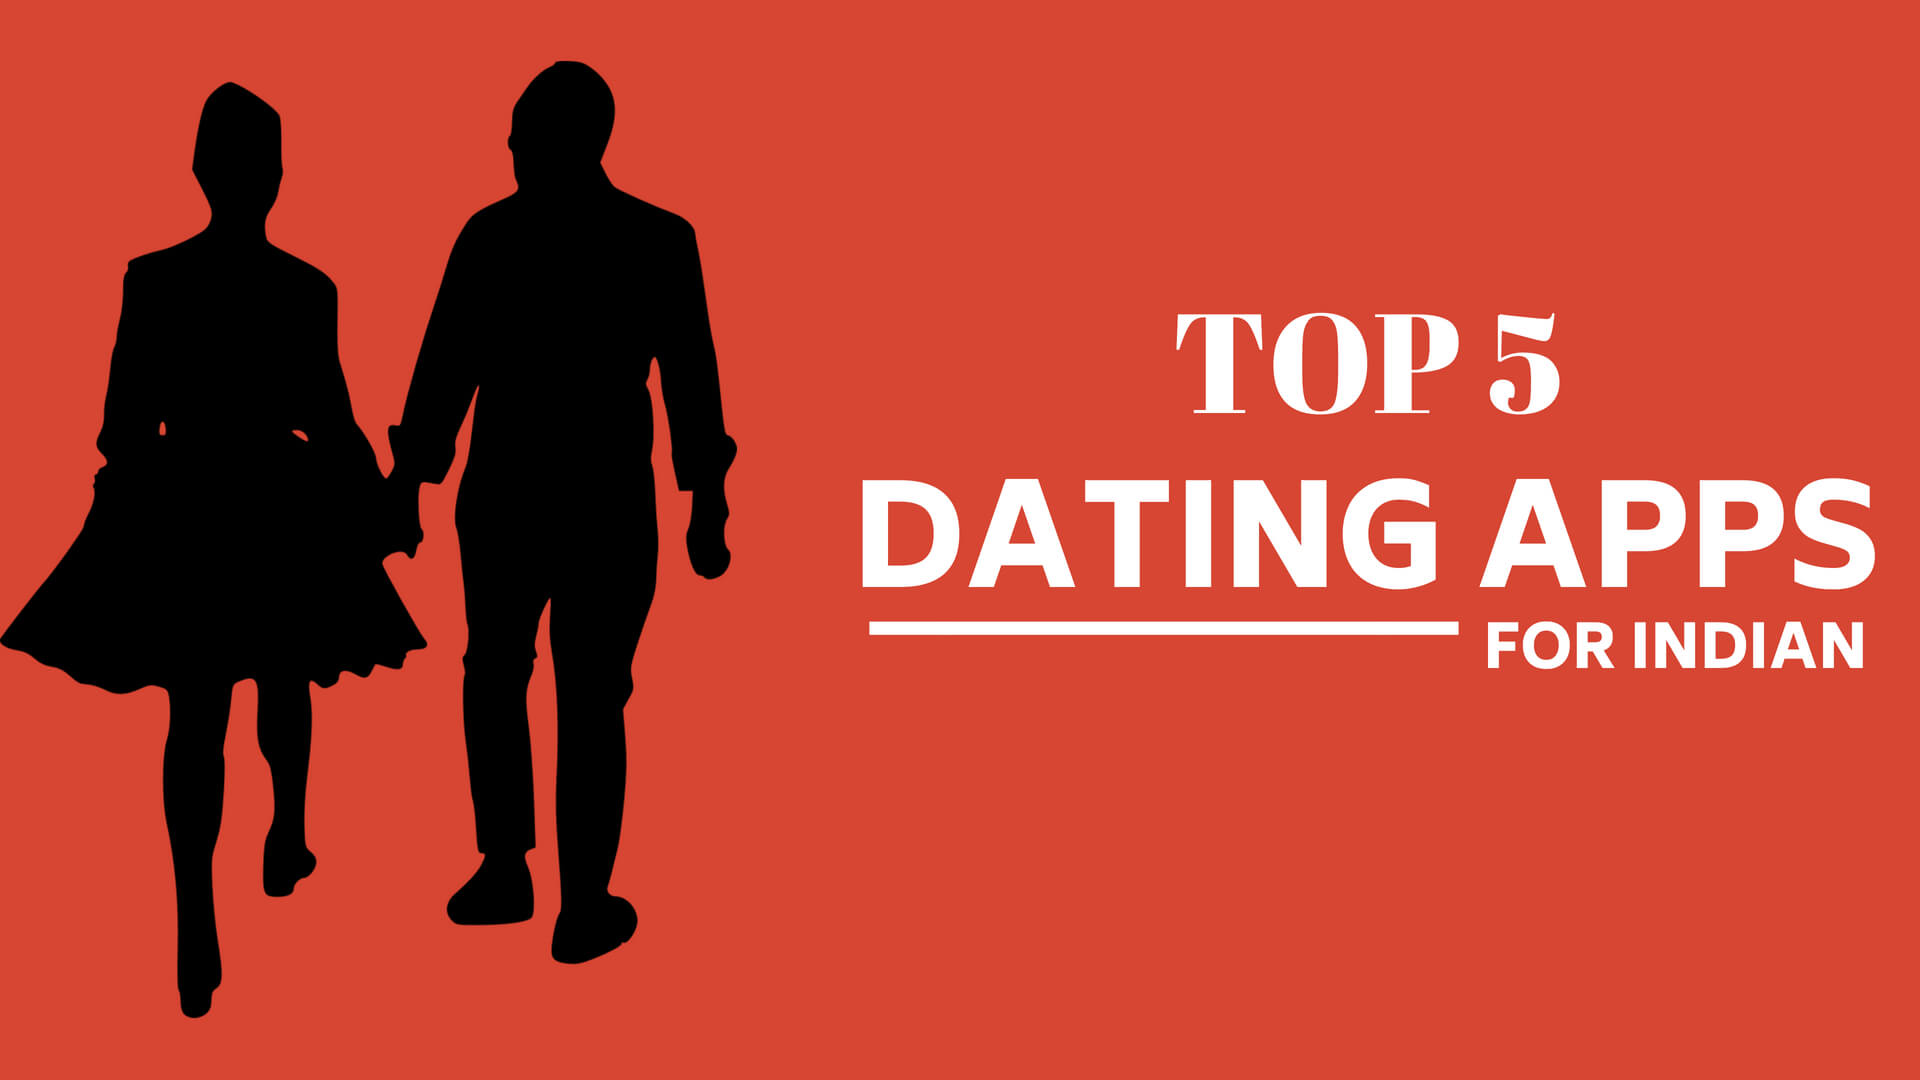 Best online dating apps for virgins